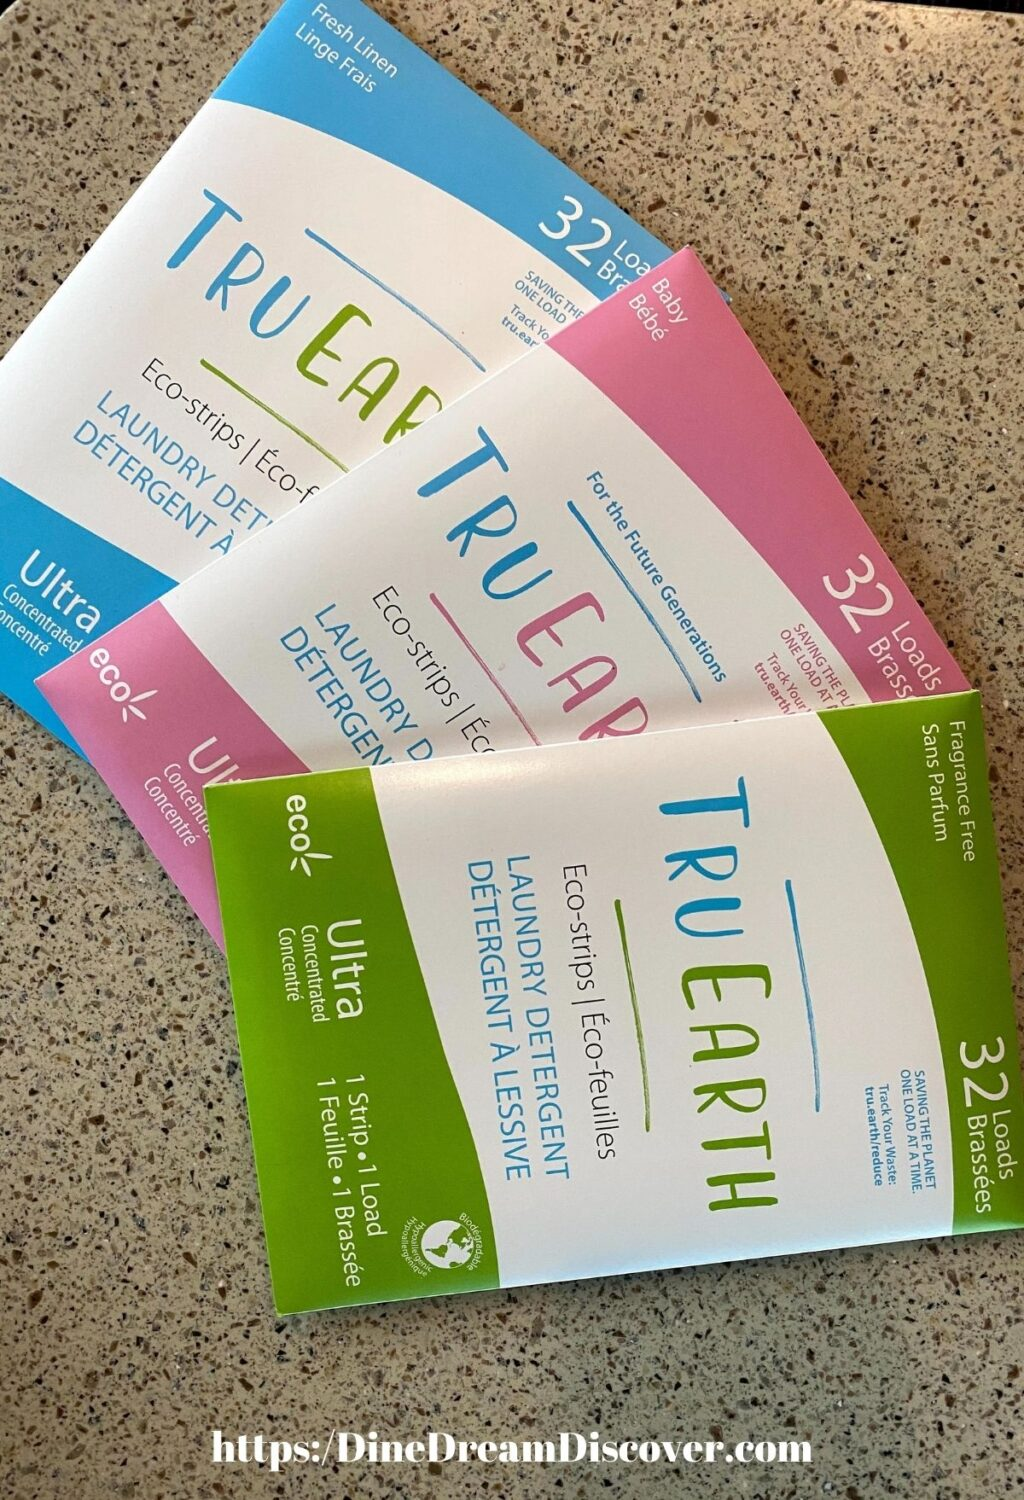 Tru Earth Laundry Strips Makes Life Easy